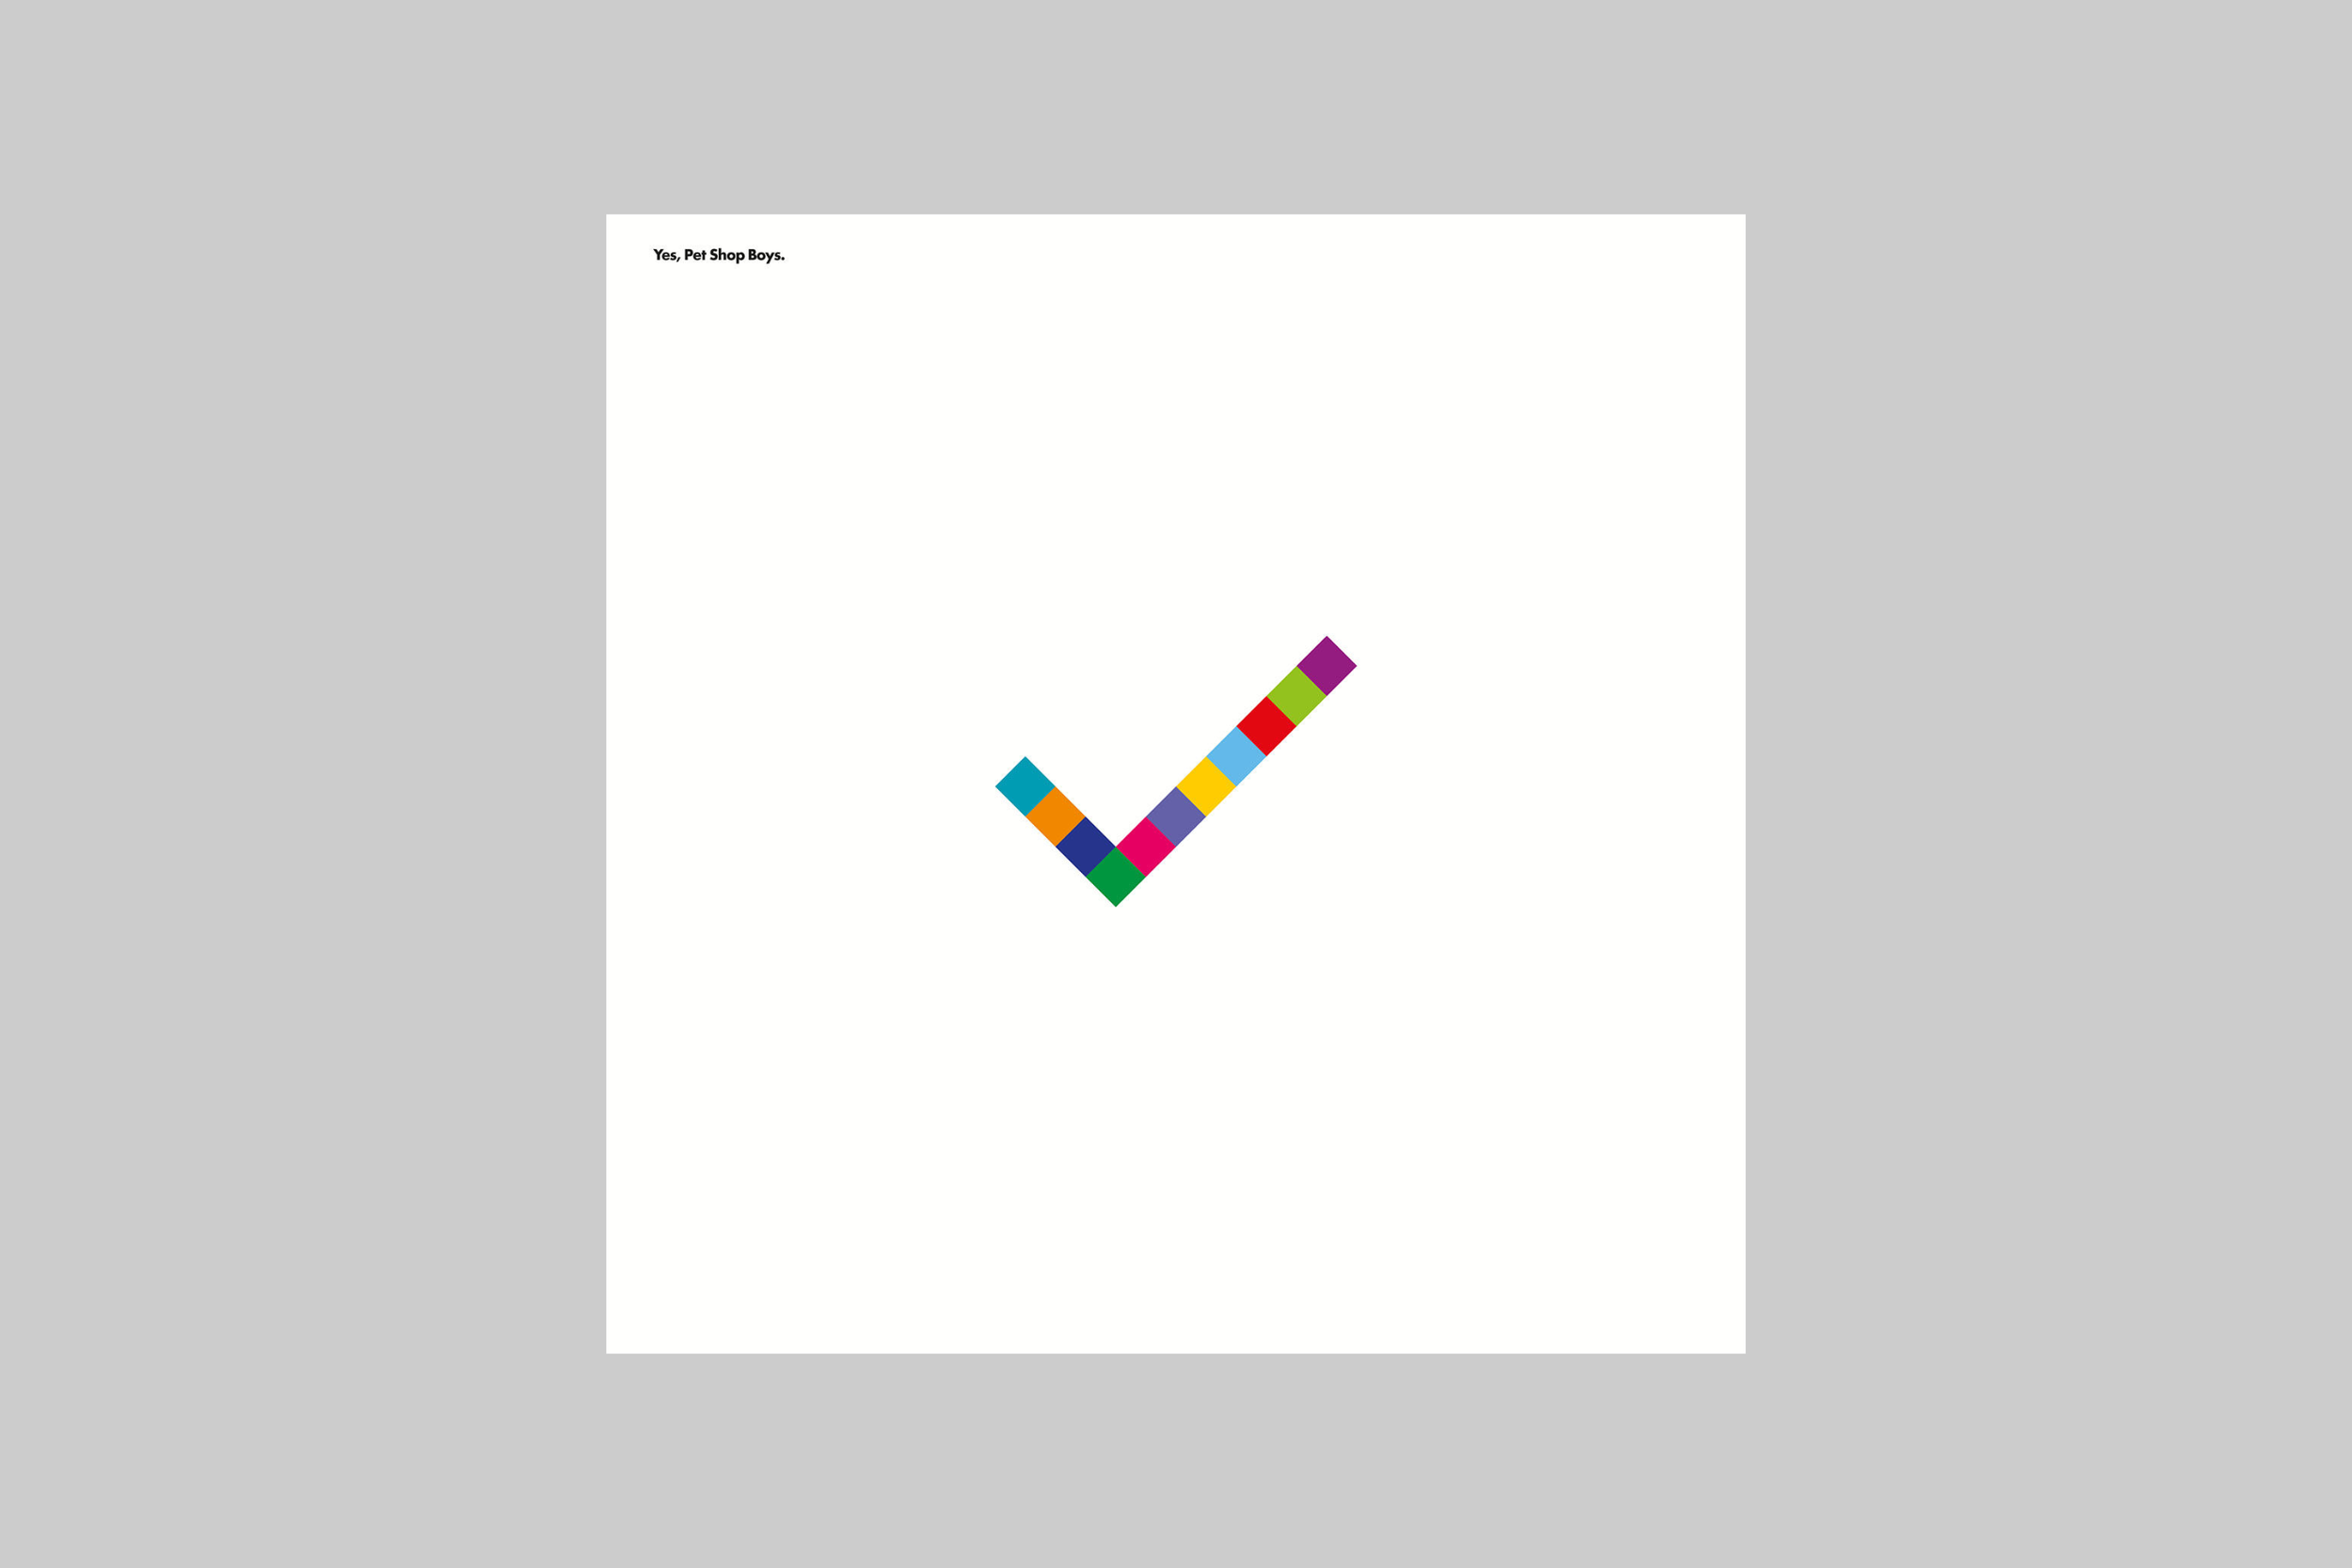 Yes  - 2009 - Design by Farrow